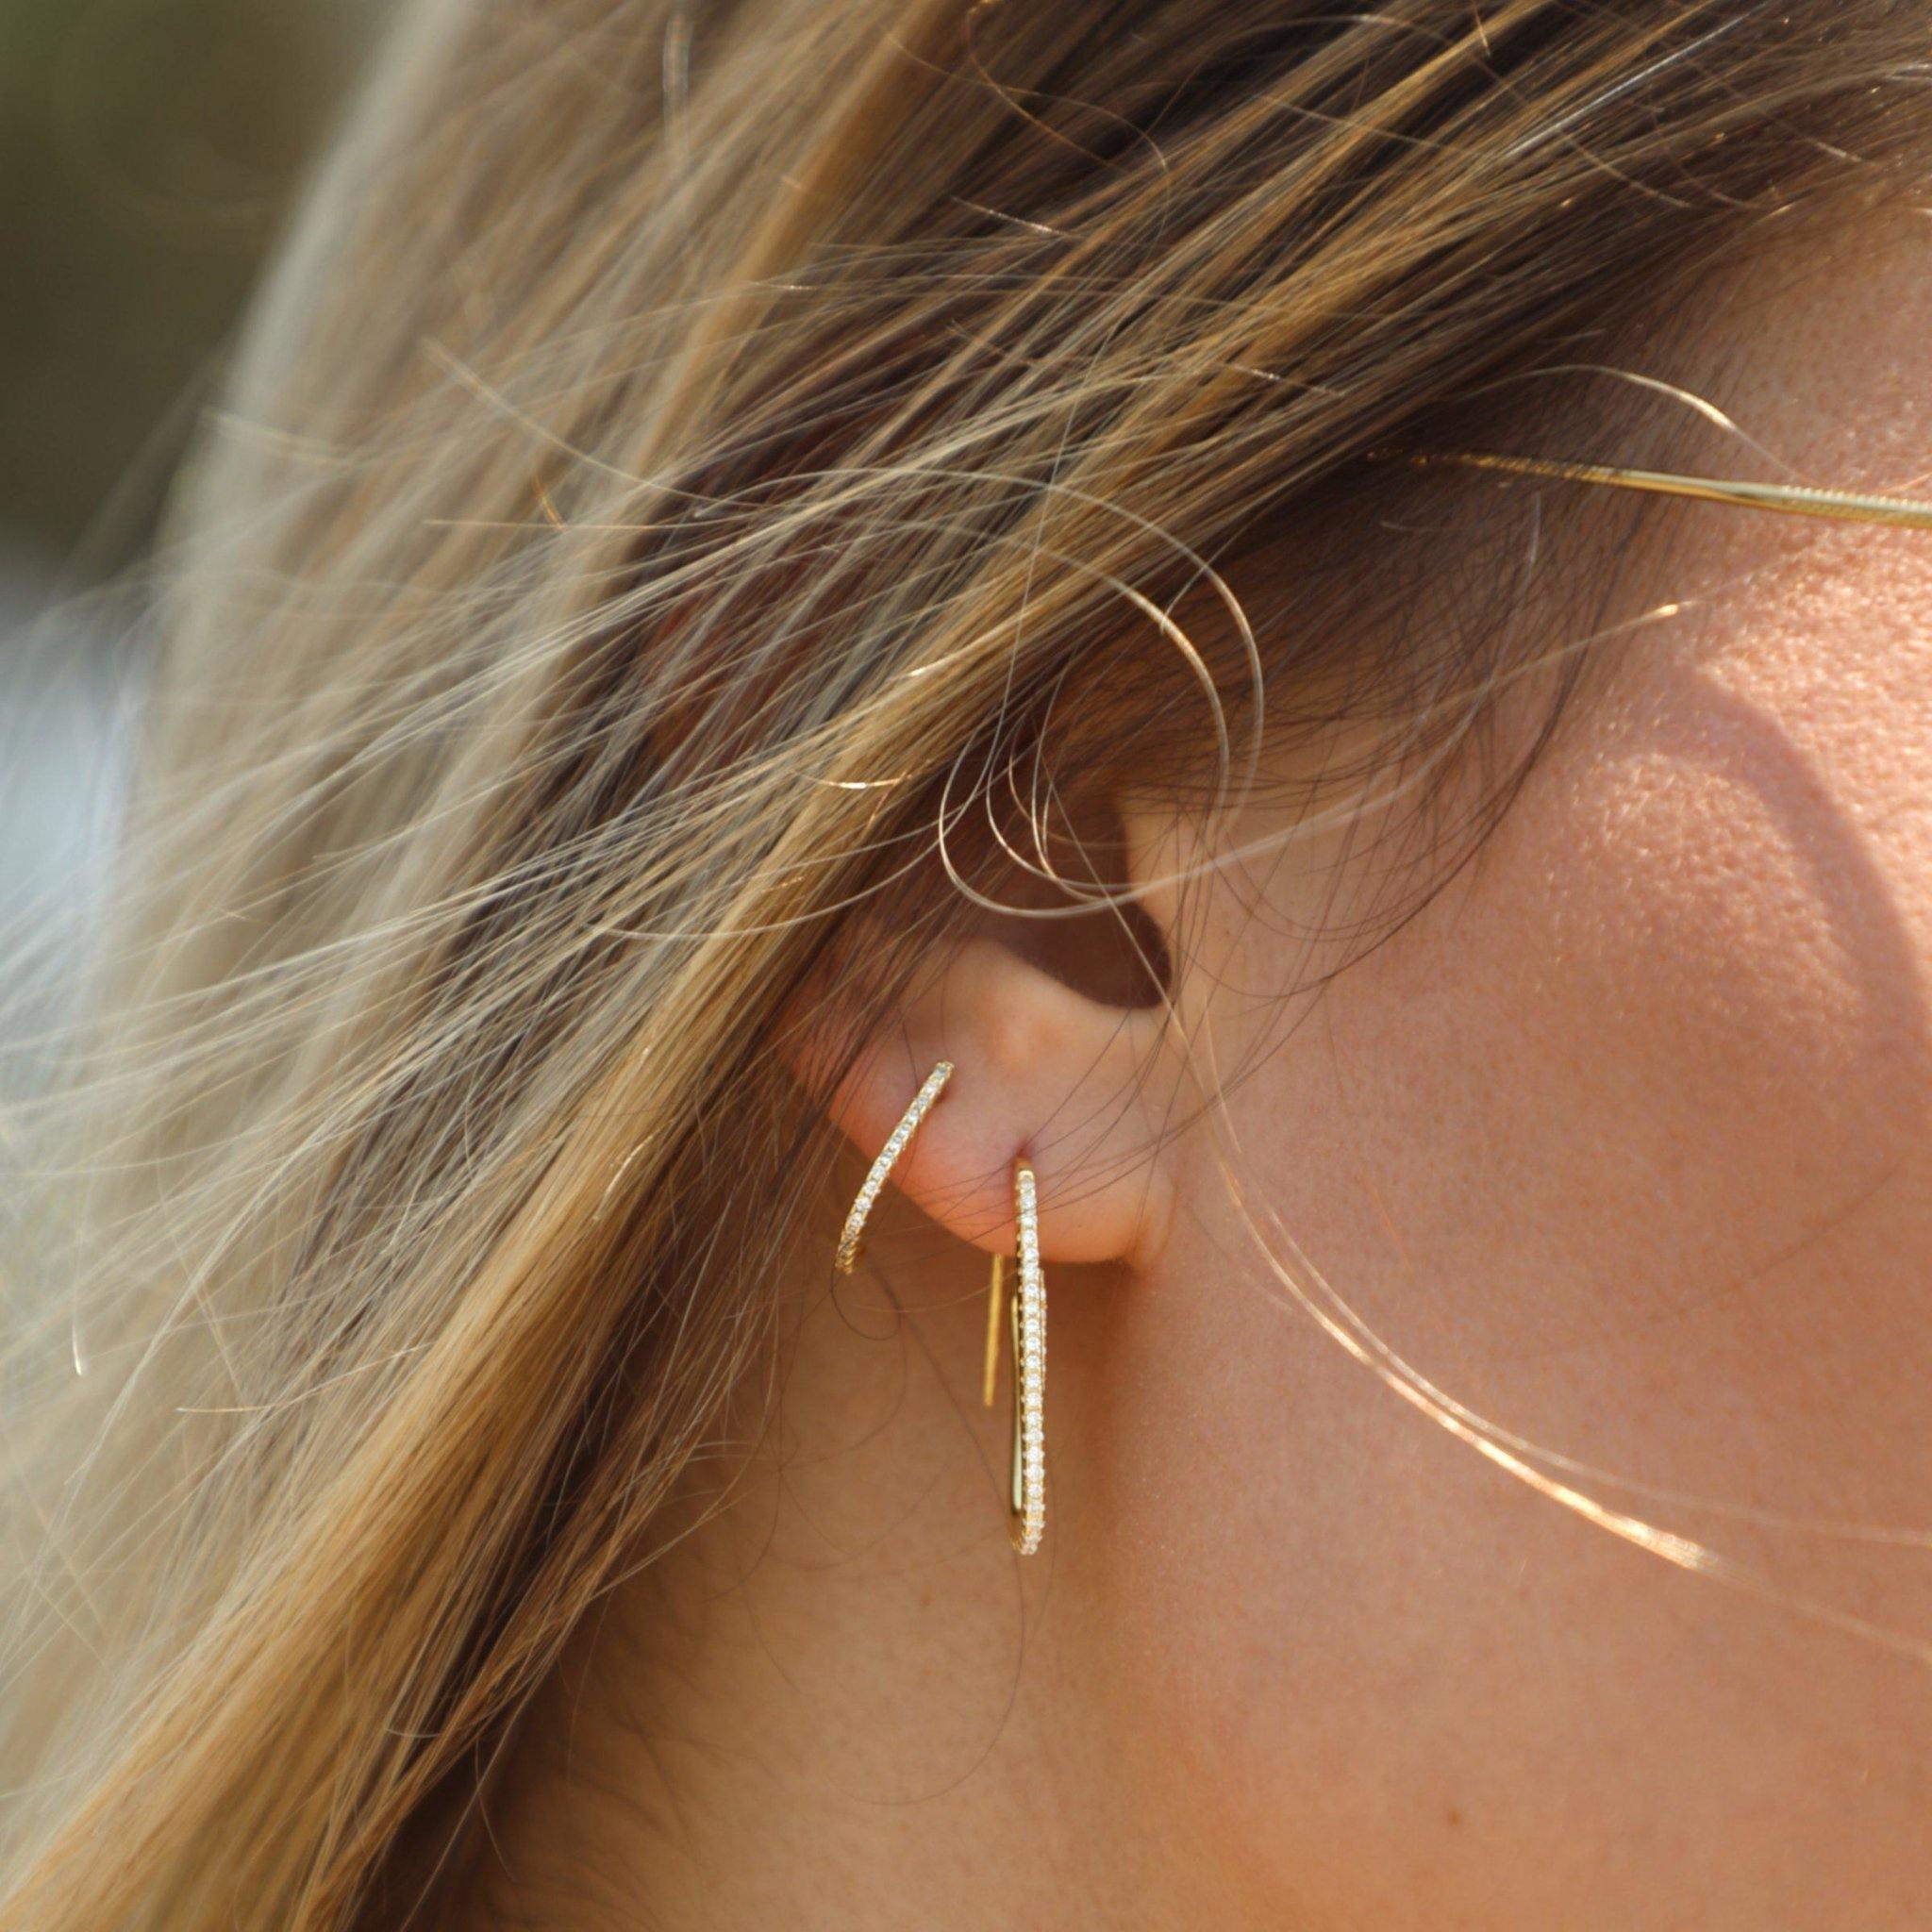 Hooked On You Earring - Taylor Adorn